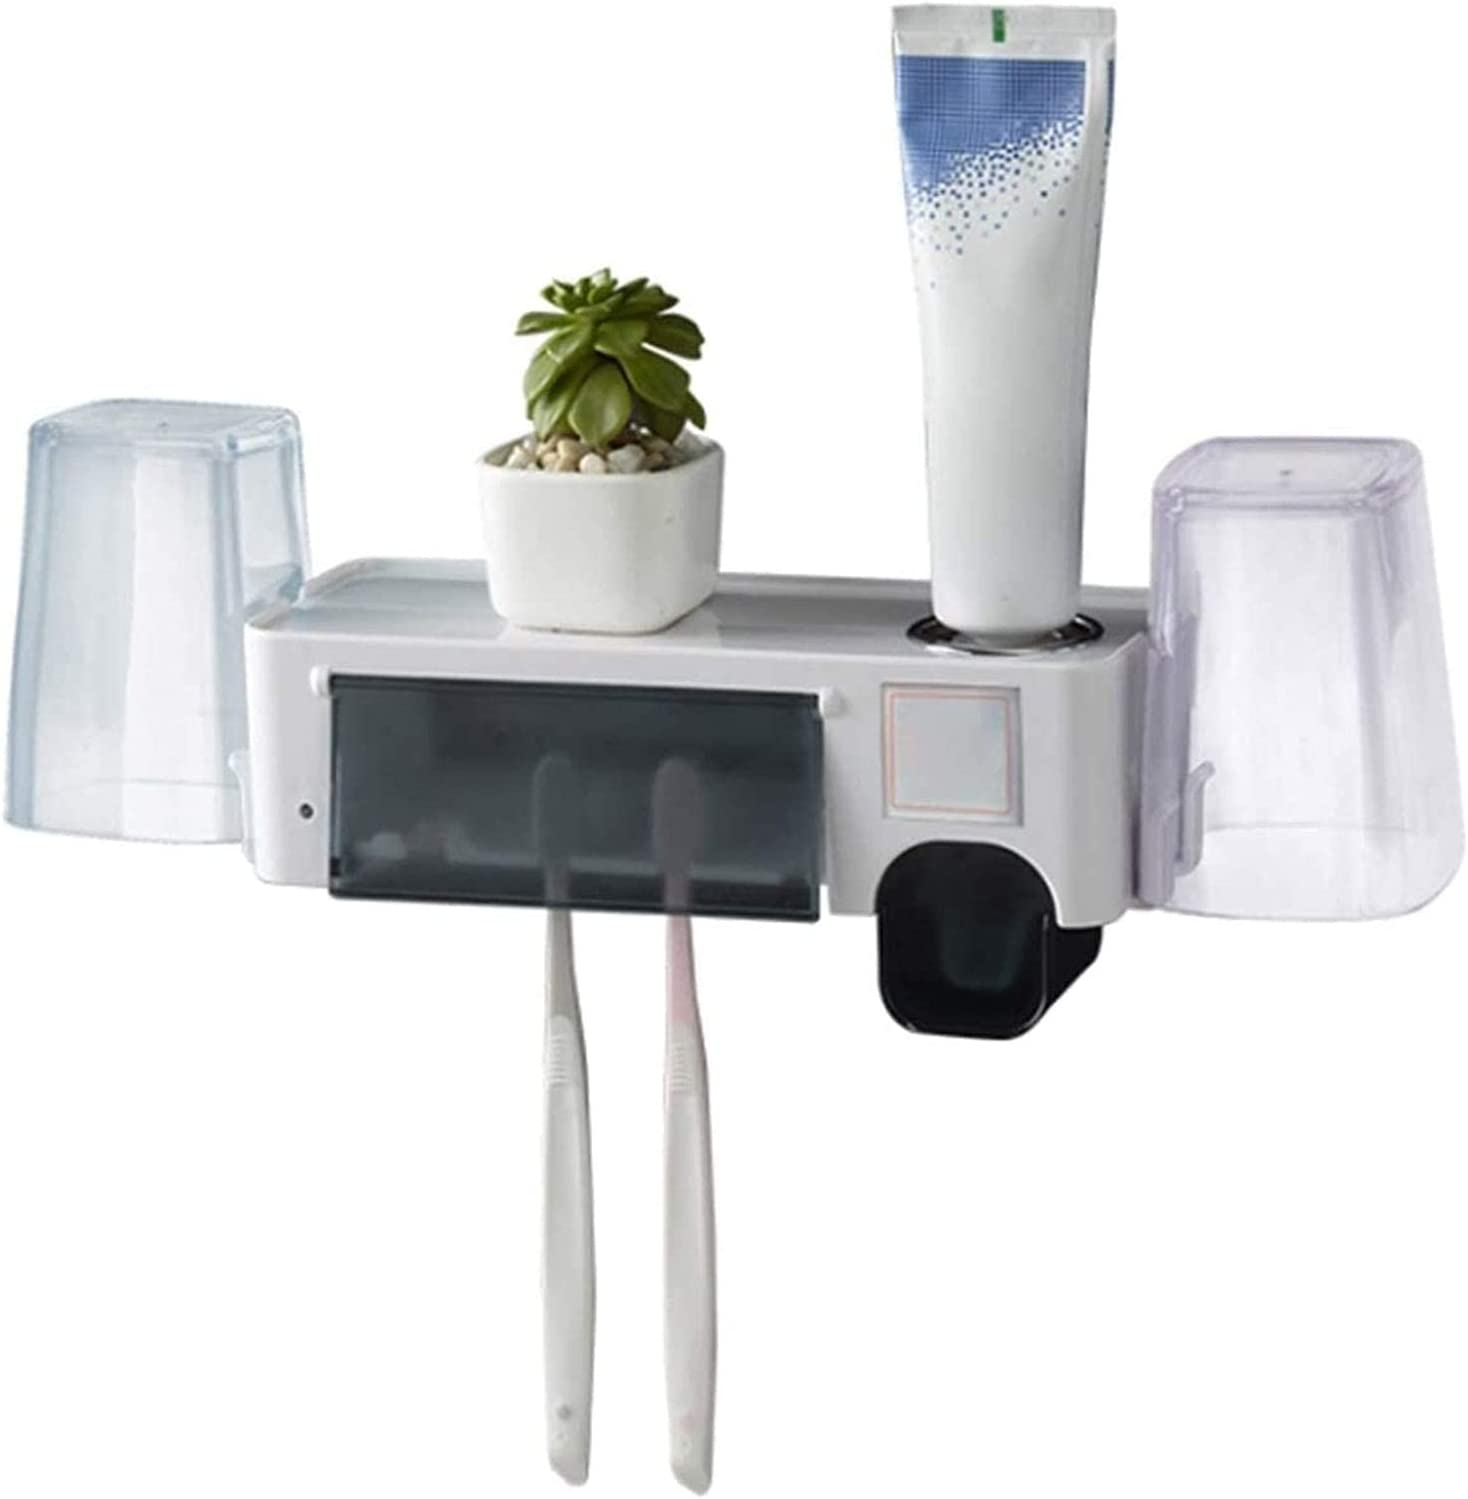 Toothbrush Holders Cheap super special price Bathroom Holder Wall No low-pricing Mounted